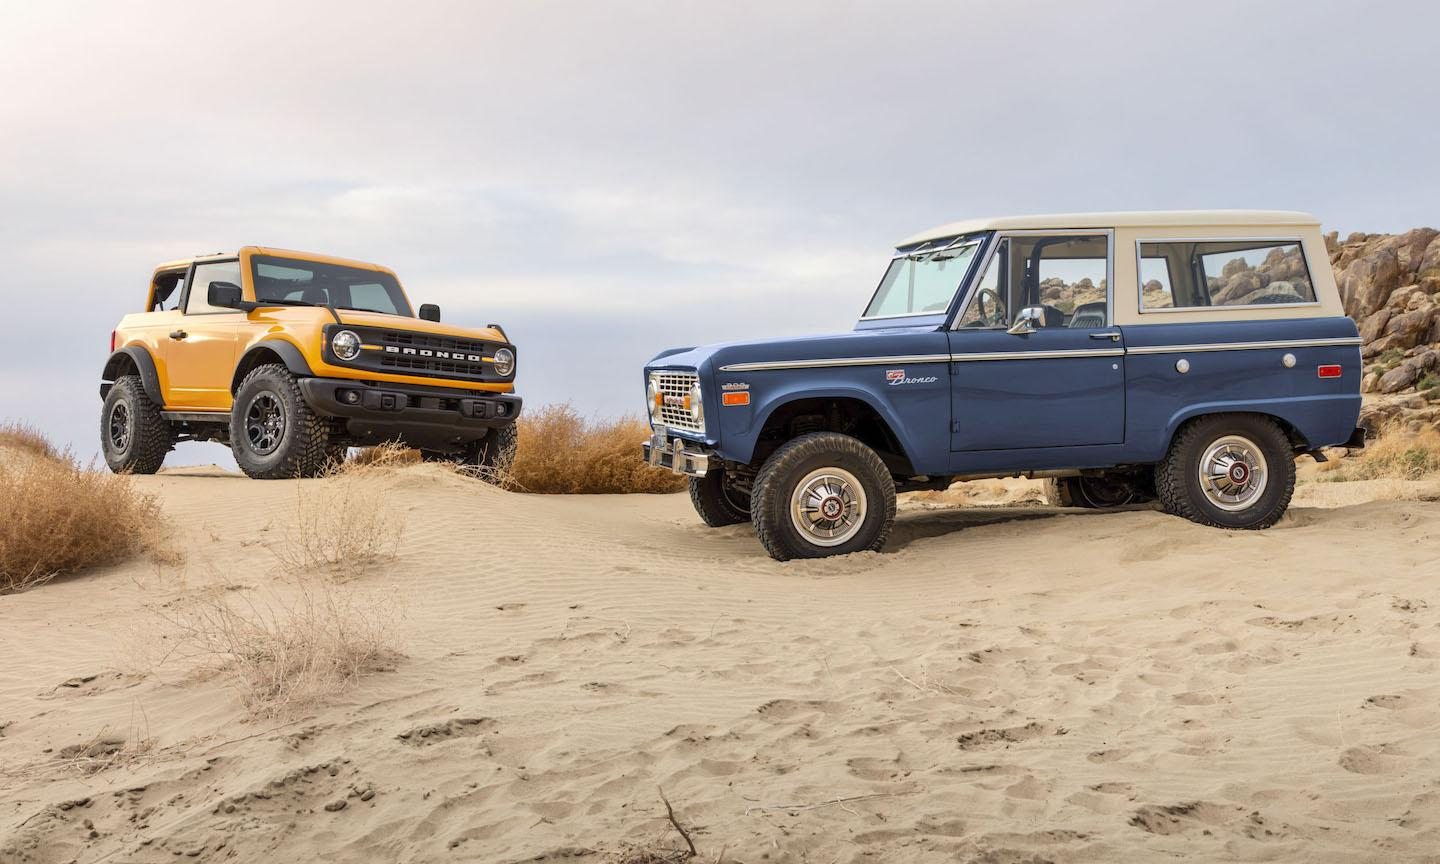 first-generation Ford Bronco, sixth-generation Ford Bronco, new Bronco, new Ford Bronco, Bronco, Bronco II